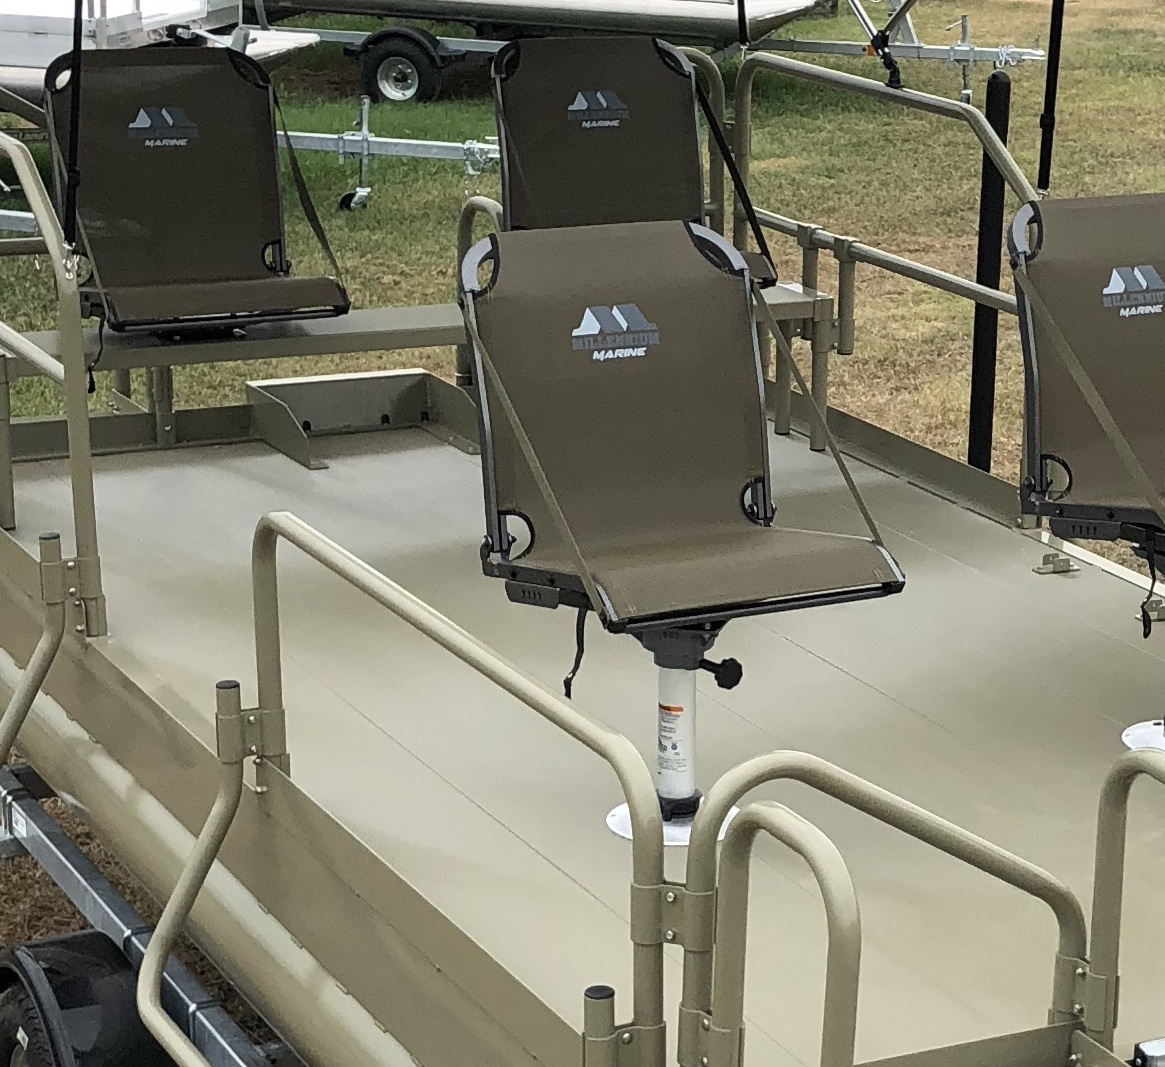 Shown with 4 Millennium seats ( 2) mounted on swivels on the rear bench and ( 2 ) on removable pedestals on the front.